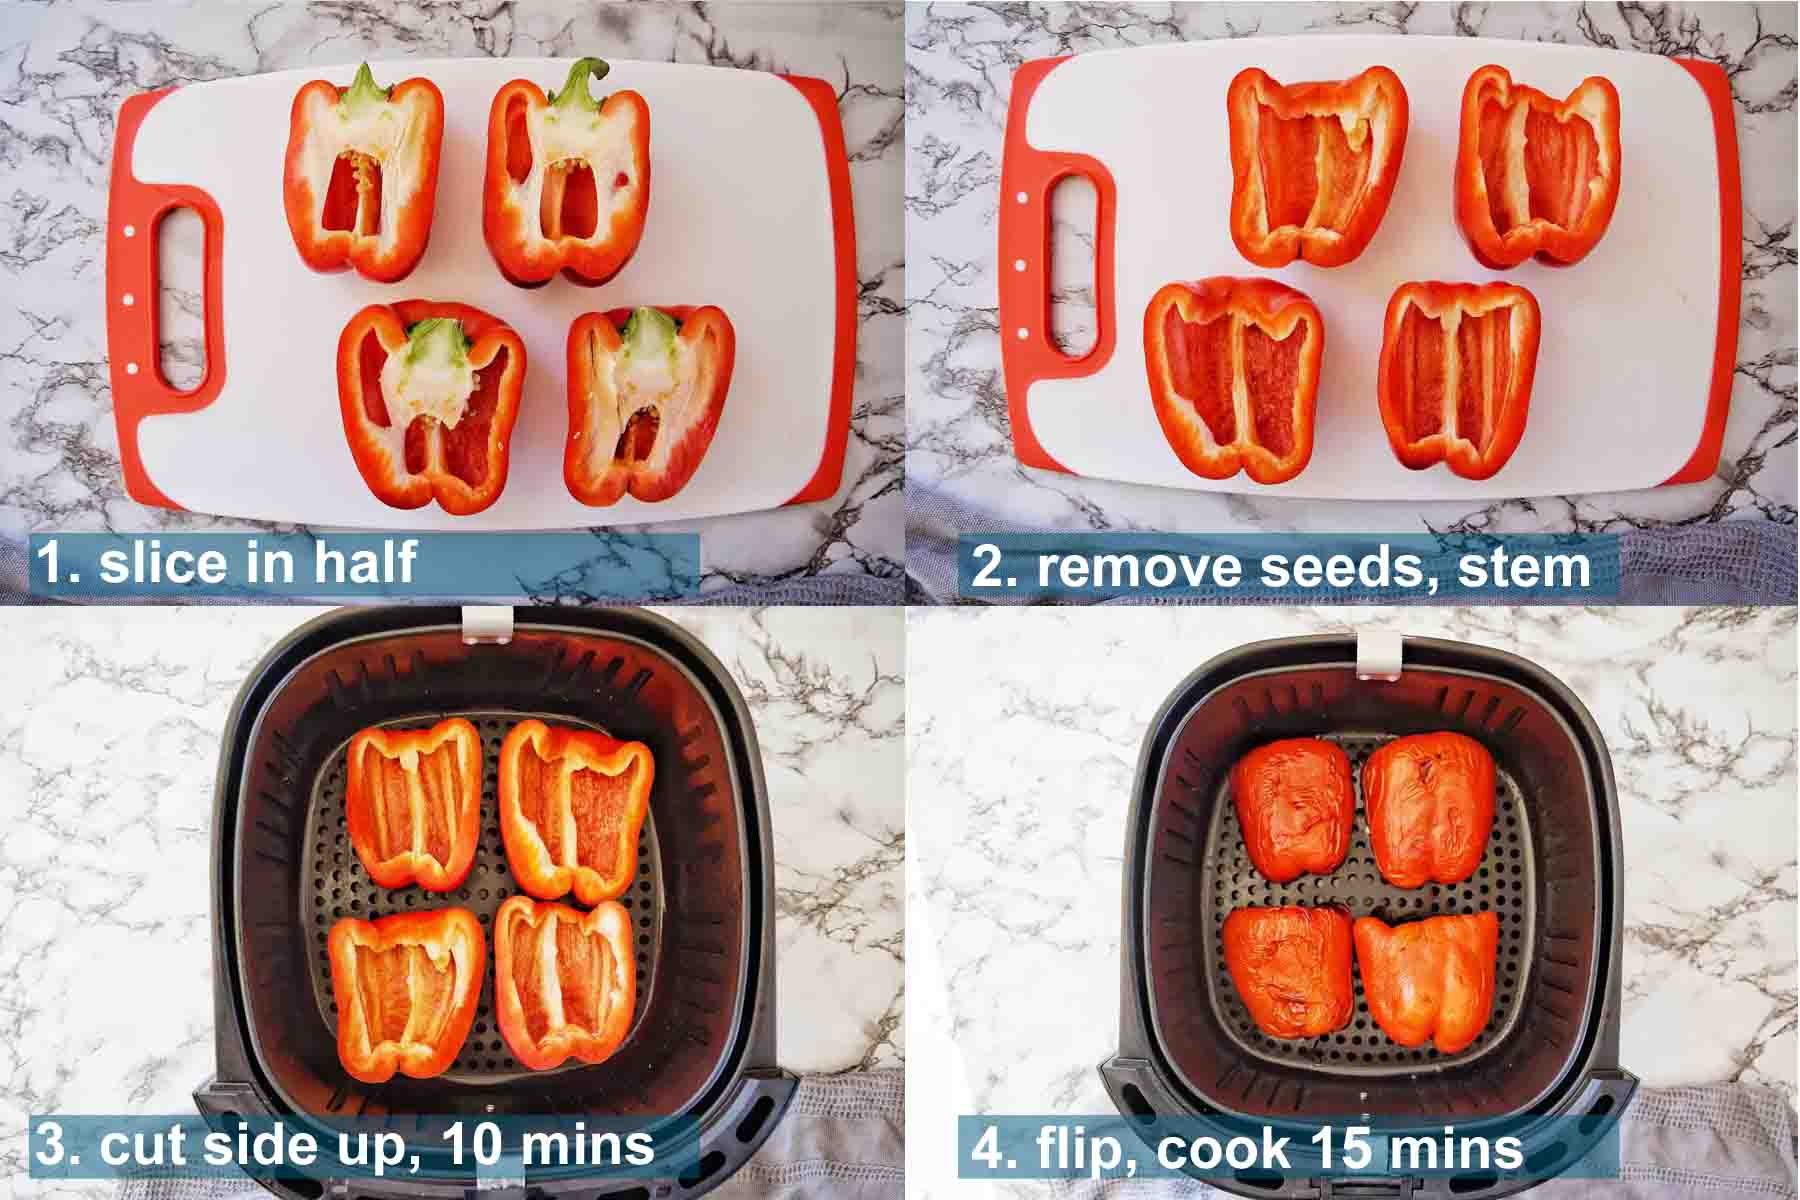 Air Fryer Roasted Peppers method 1 to 4 with text labels